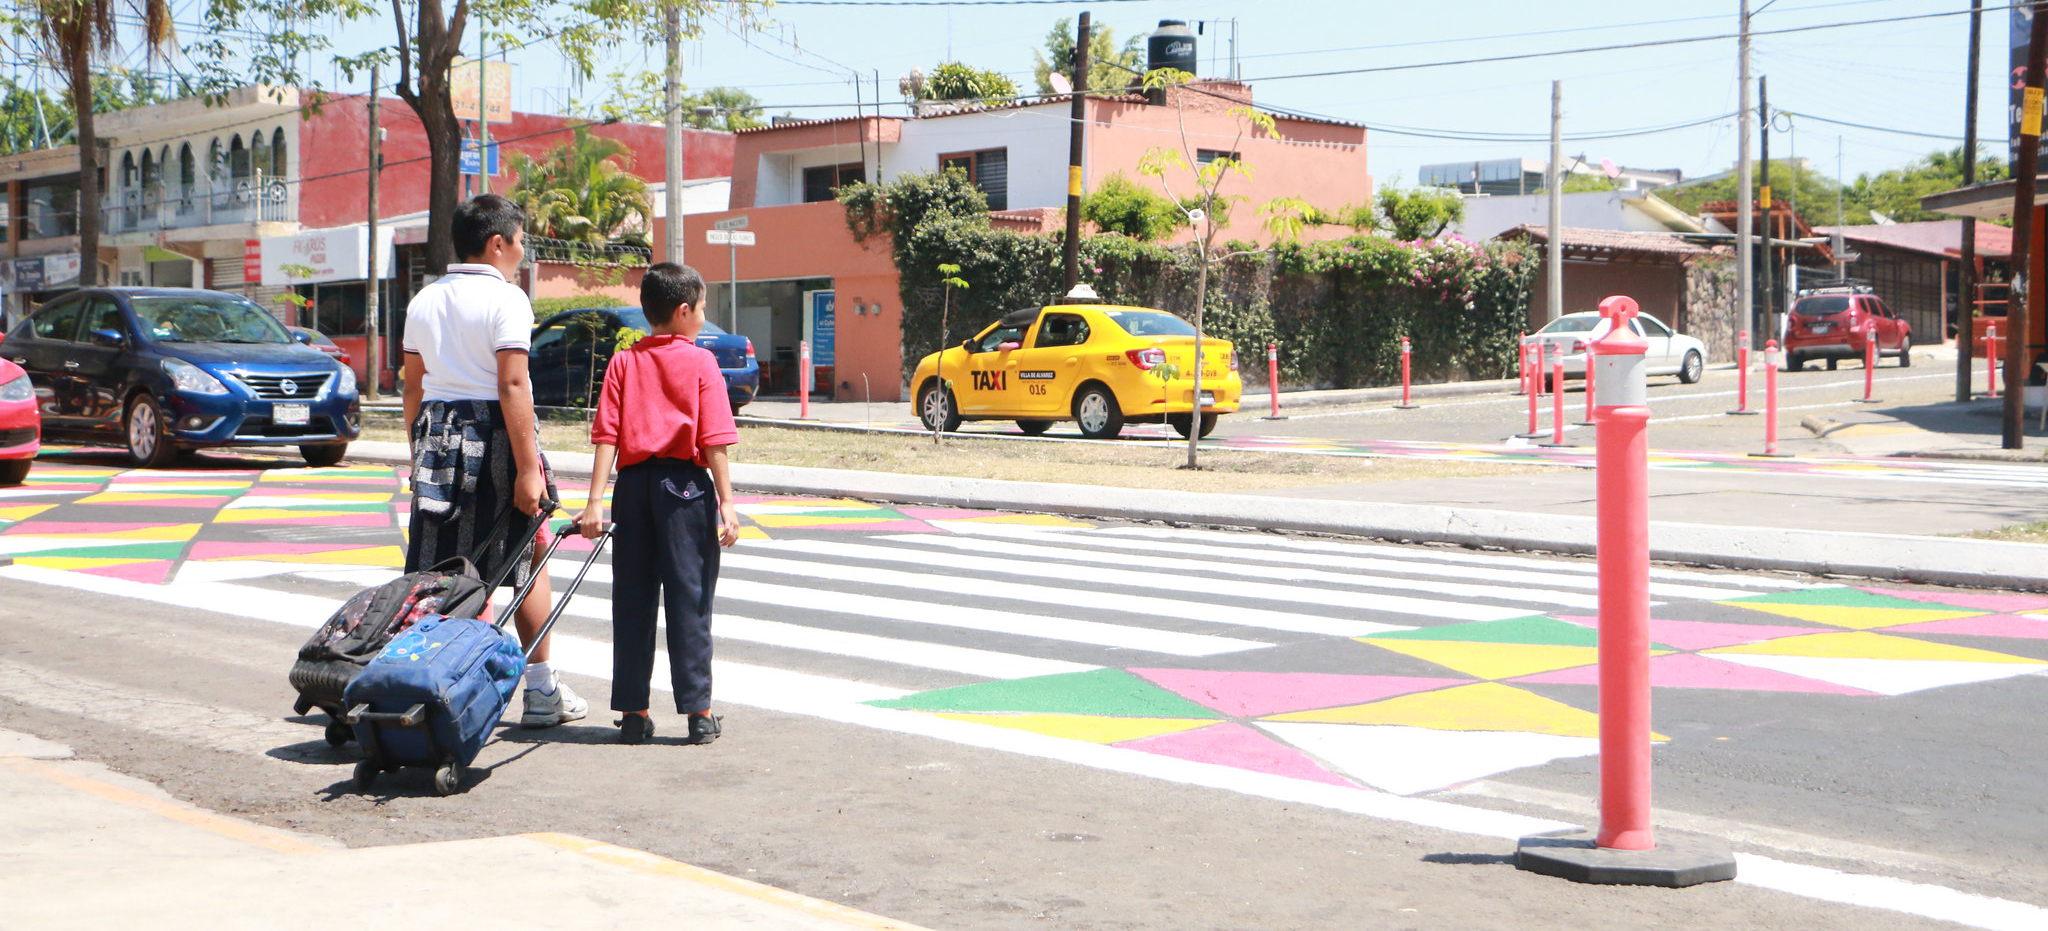 Children crossing the street in Colima, Mexico.